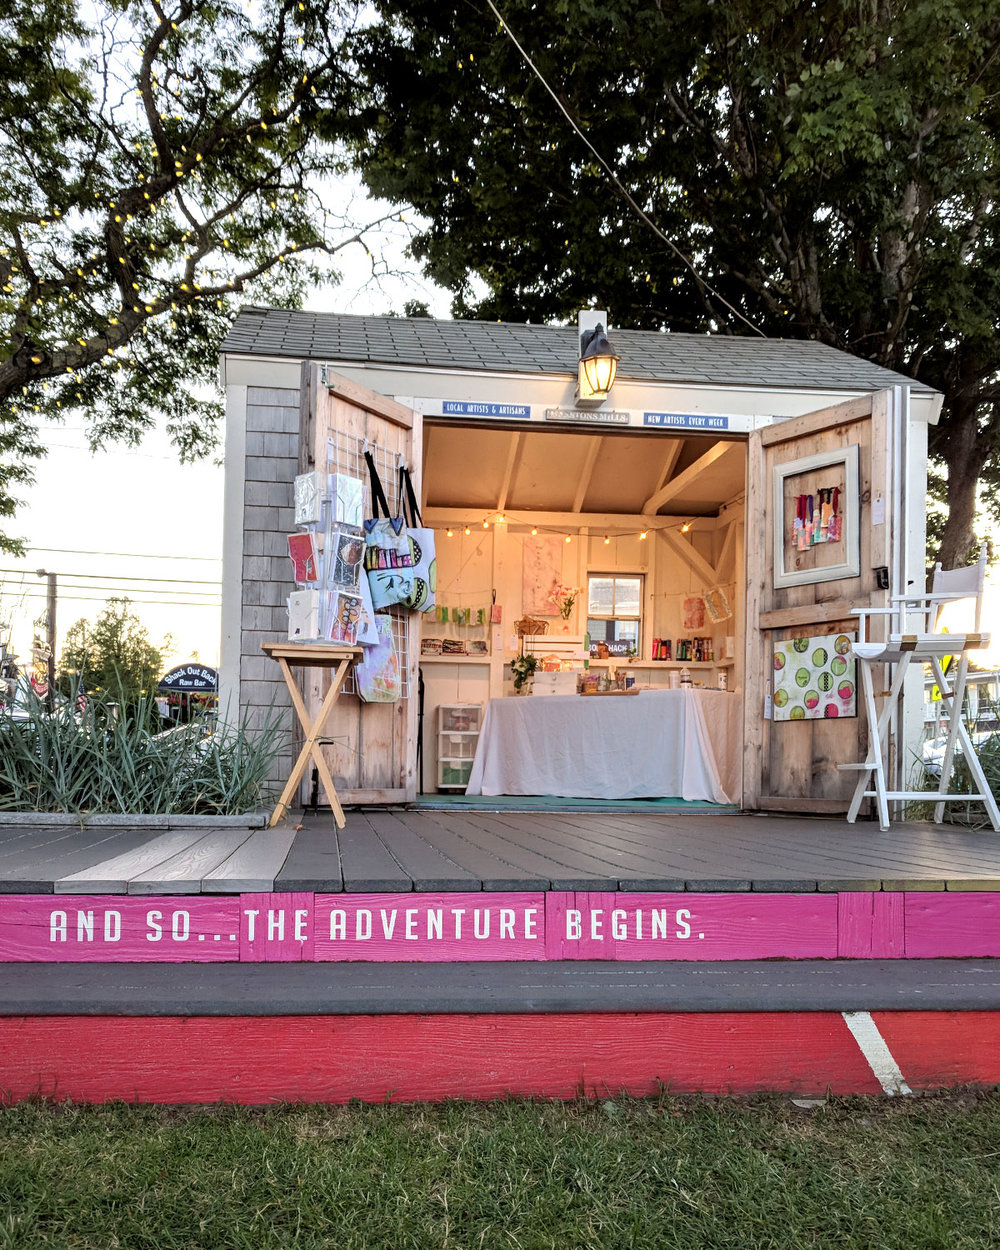 Sylvia Quiroga styled her shanty and added festive lights to make it bright and inviting